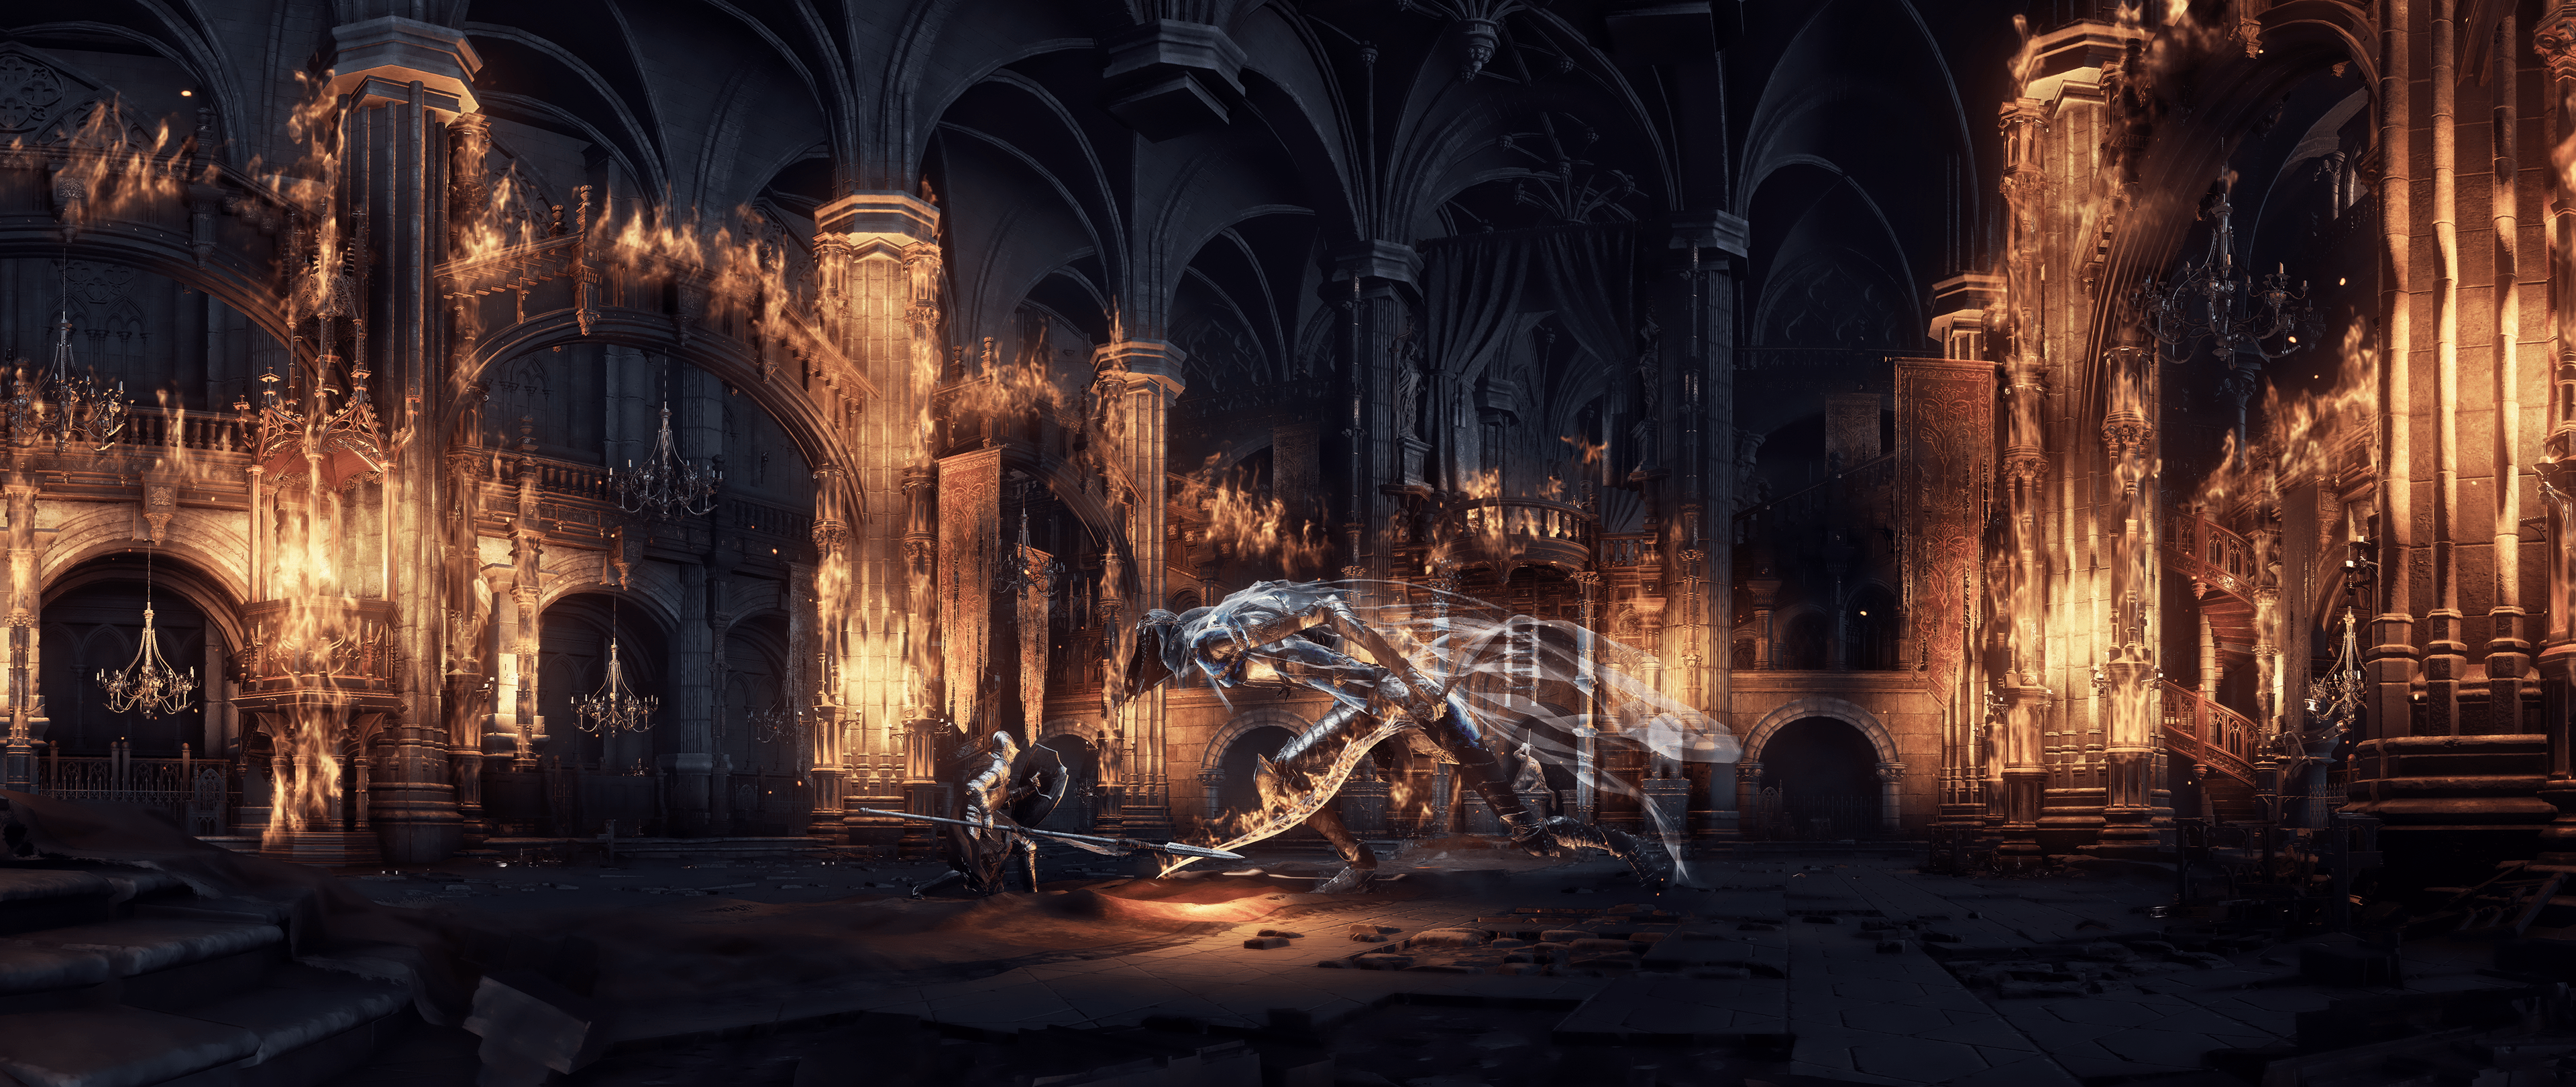 Once Upon A Time Wallpaper Iphone Dark Souls Iii Wallpapers Pictures Images